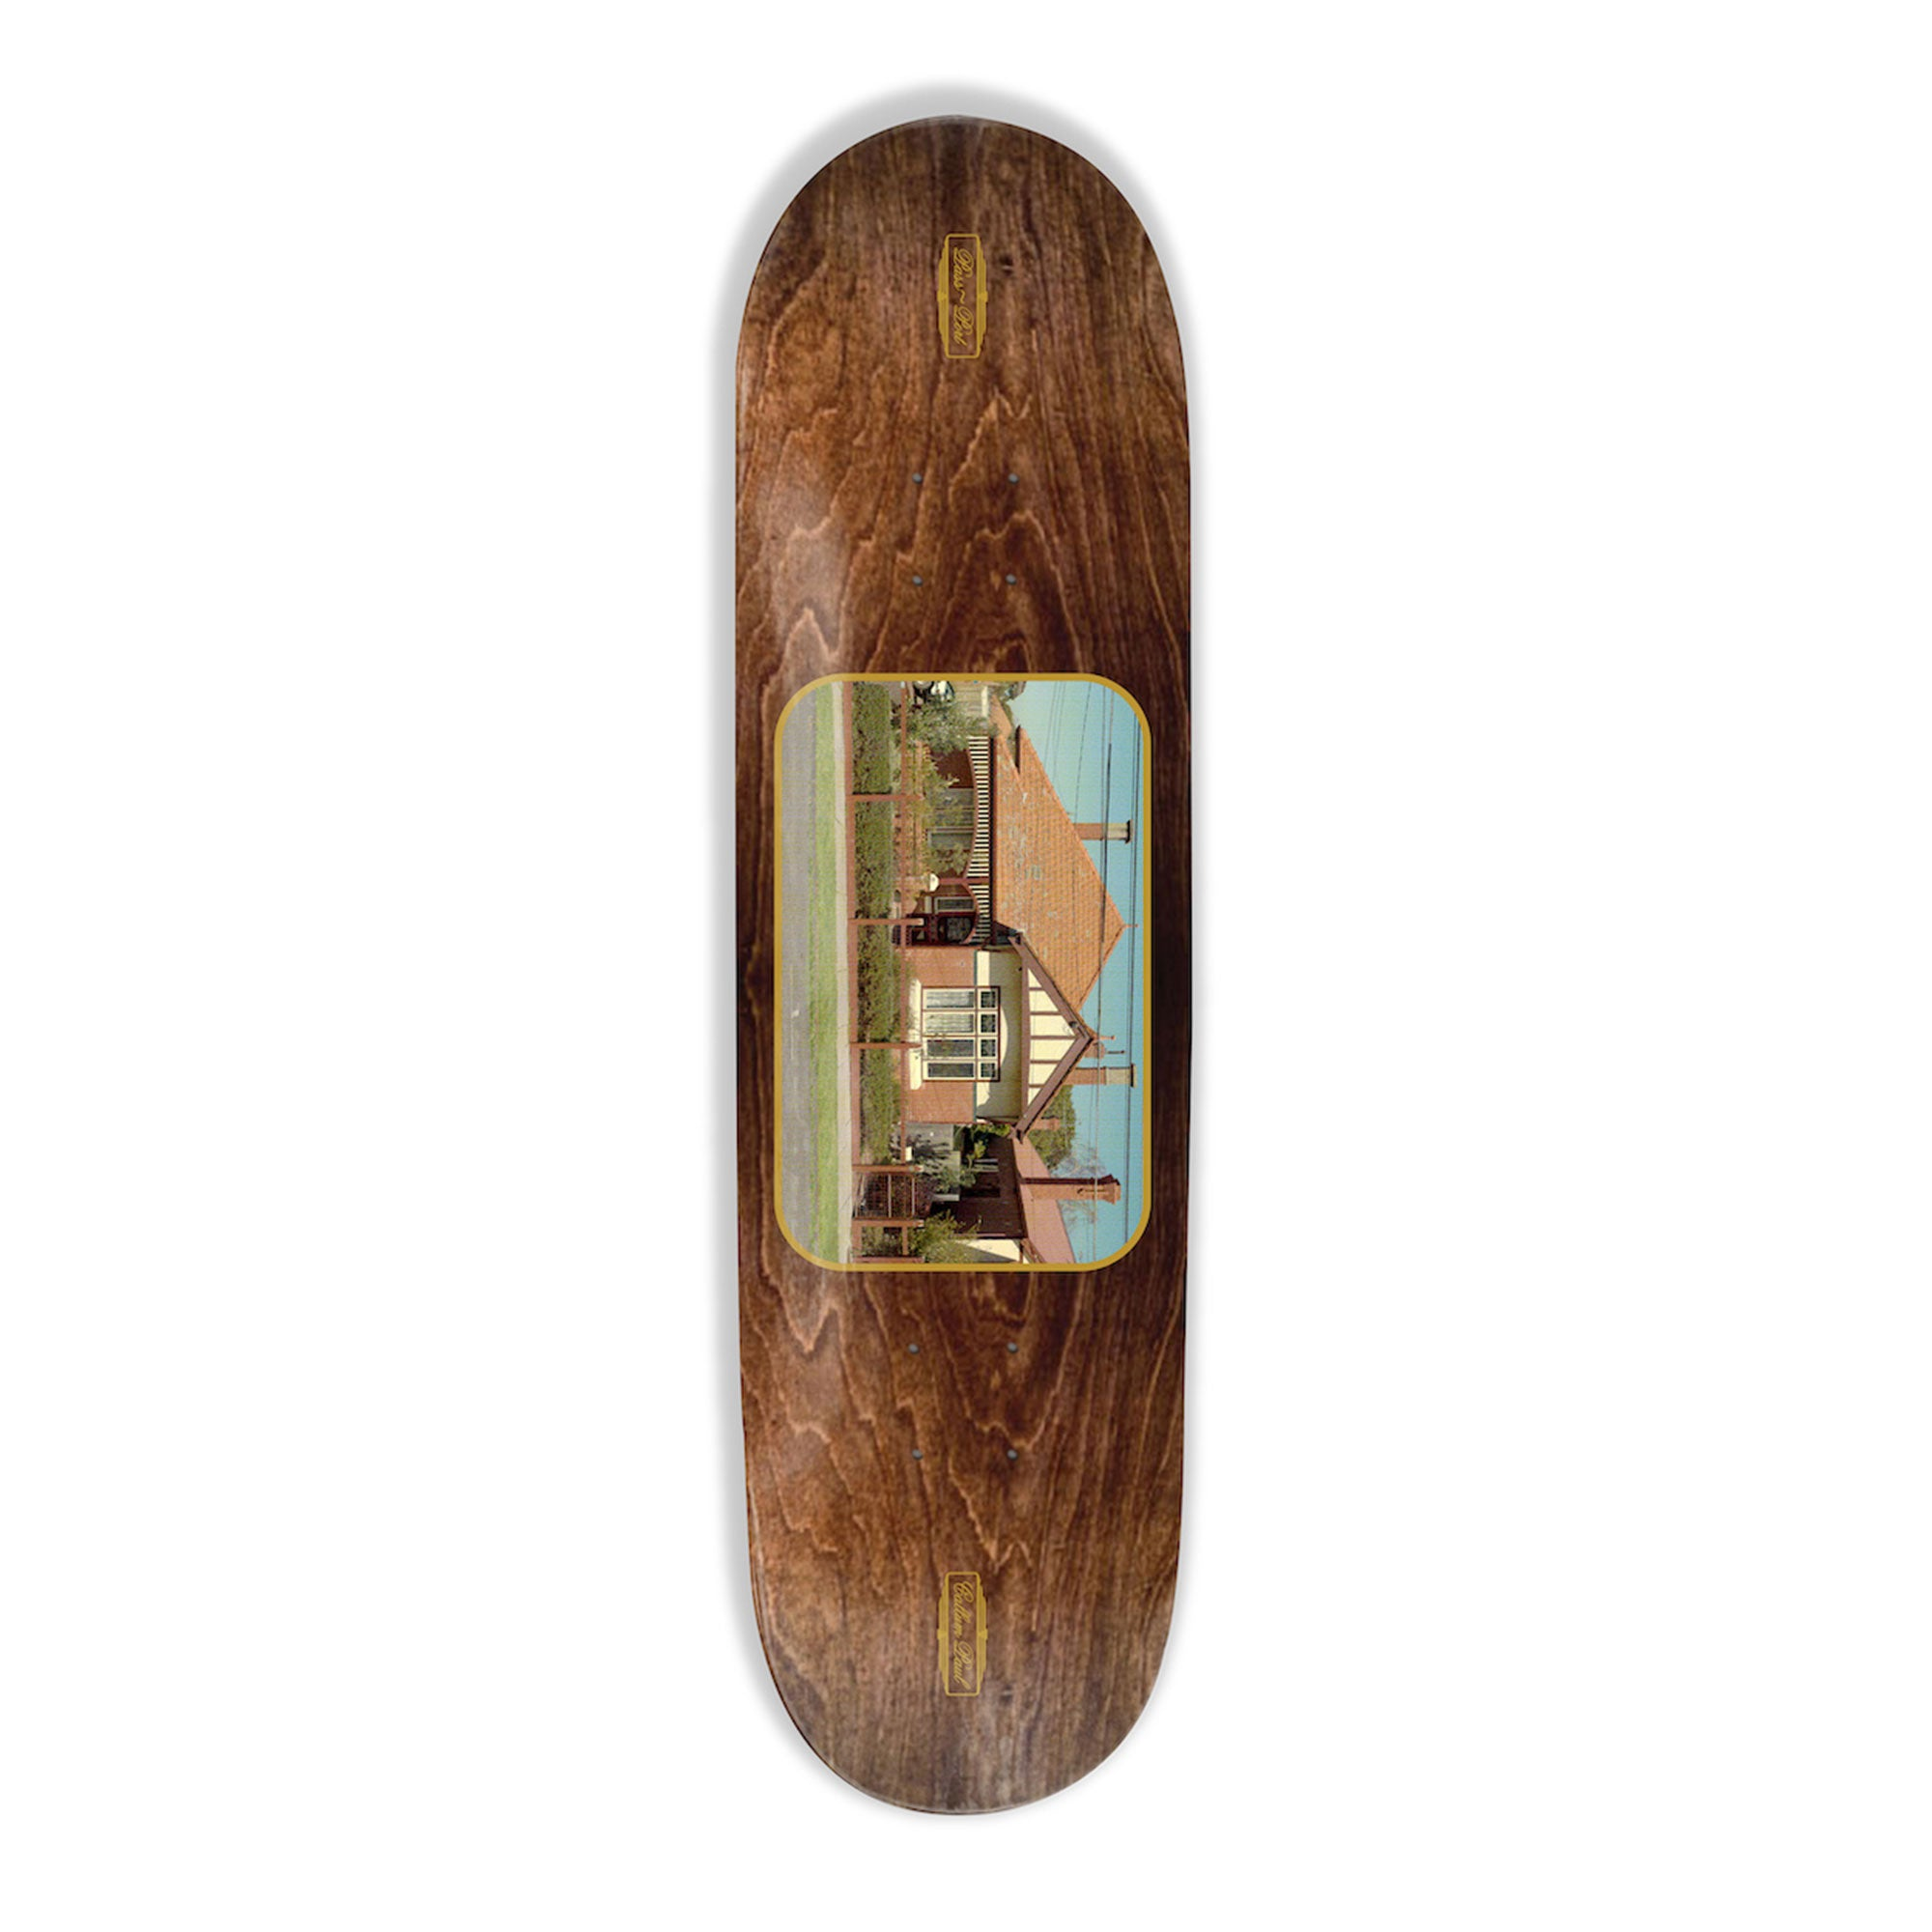 Passport Home Callum Pall Deck Product Photo #1